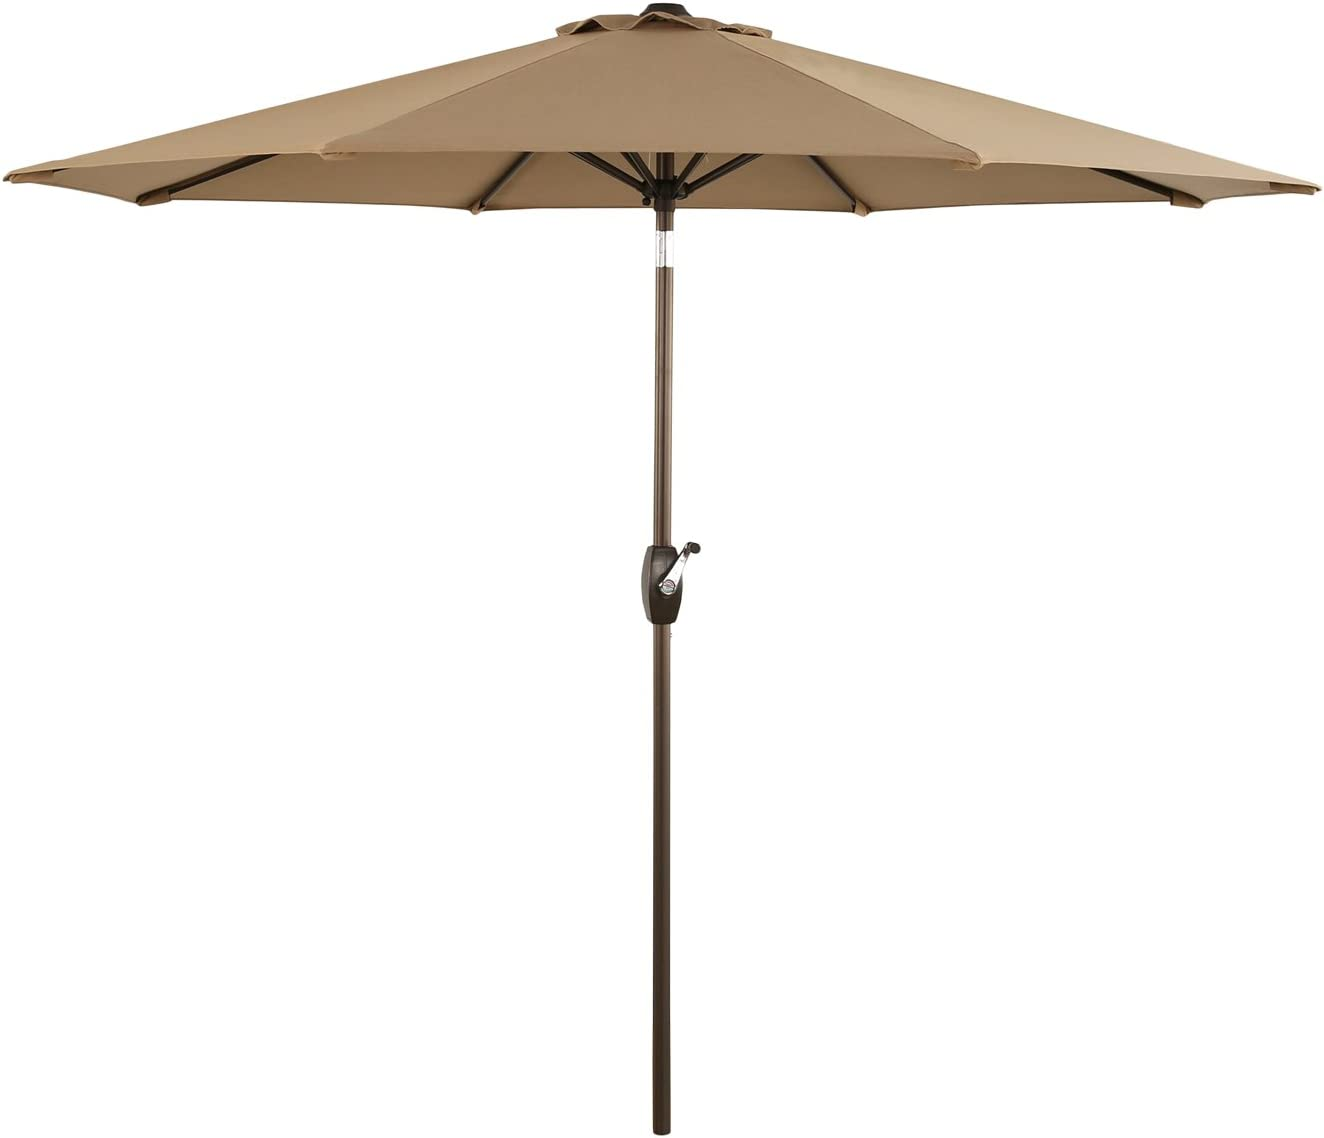 Ulax Furniture 9 Ft Outdoor Umbrella Patio Market Umbrella Aluminum with Push Button Tilt Crank, Sunbrella Fabric, Heather Beige